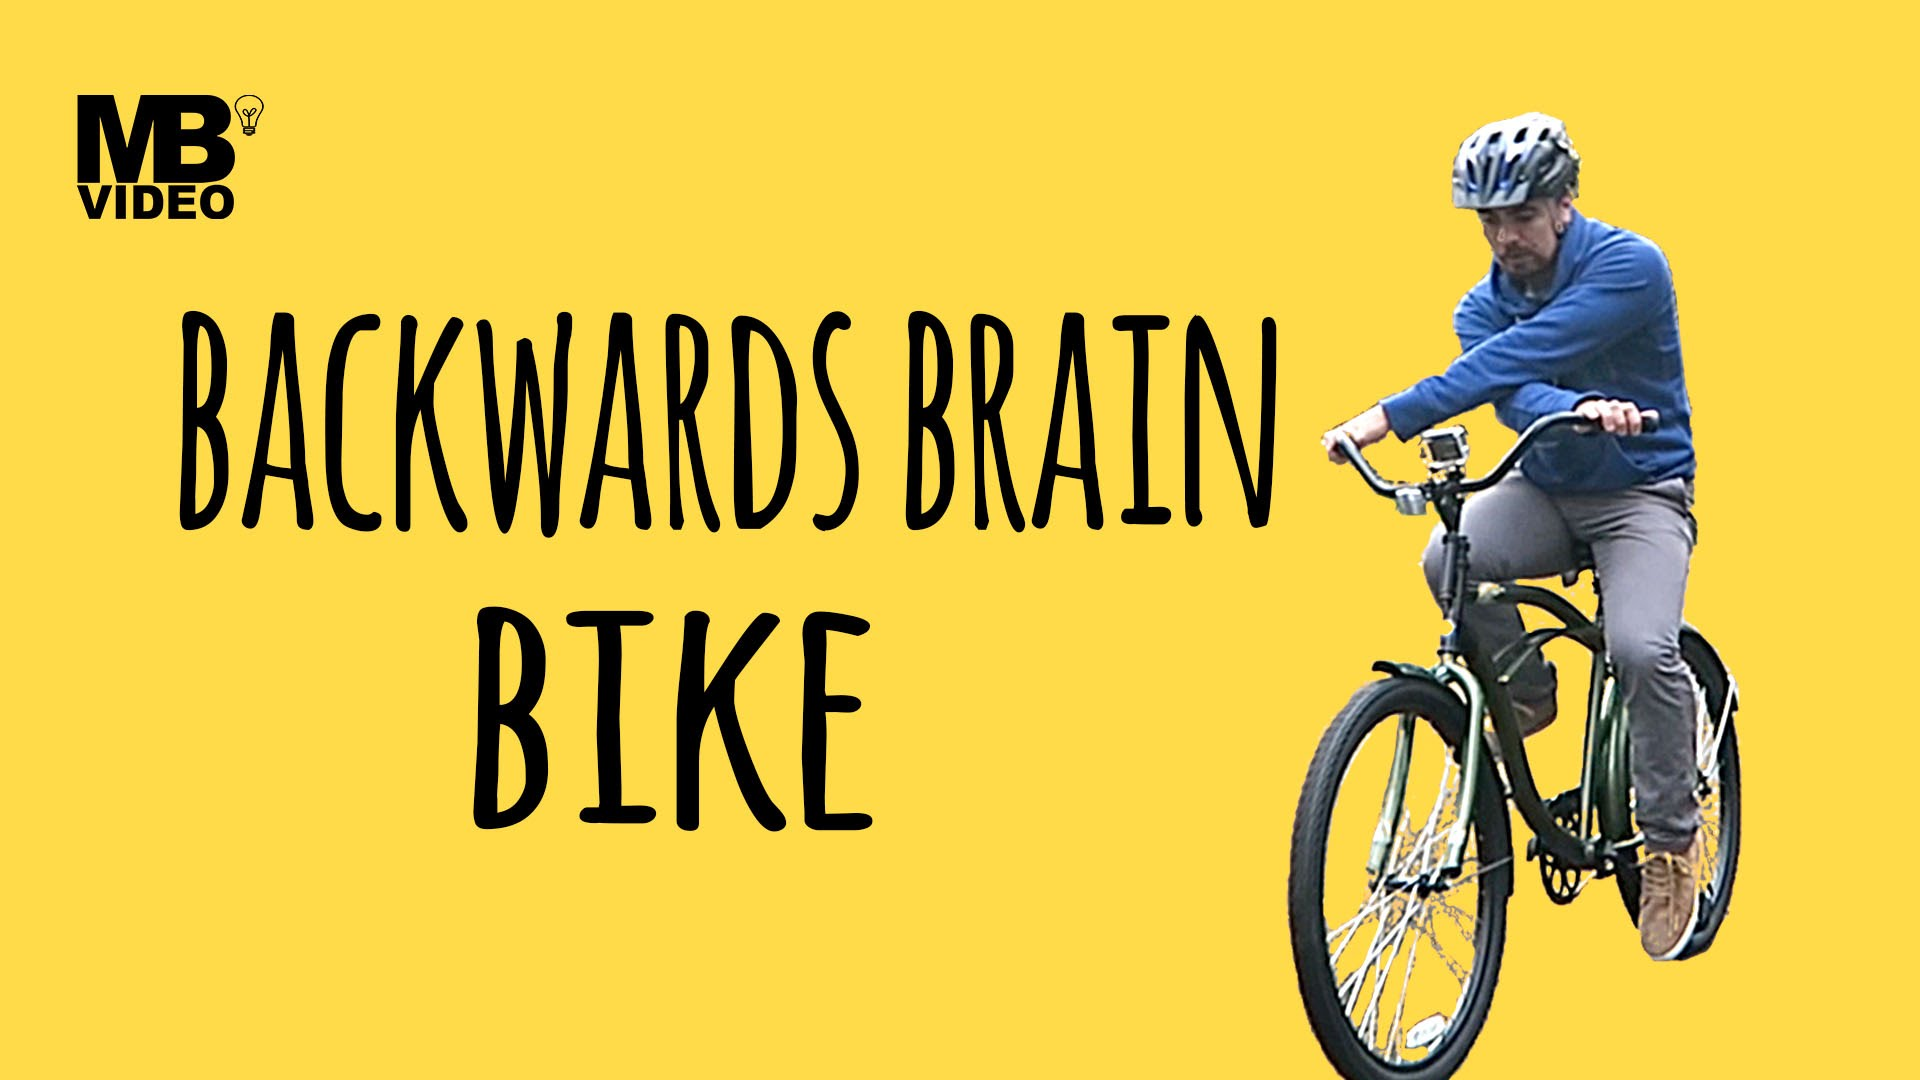 Backwards Brain Bike